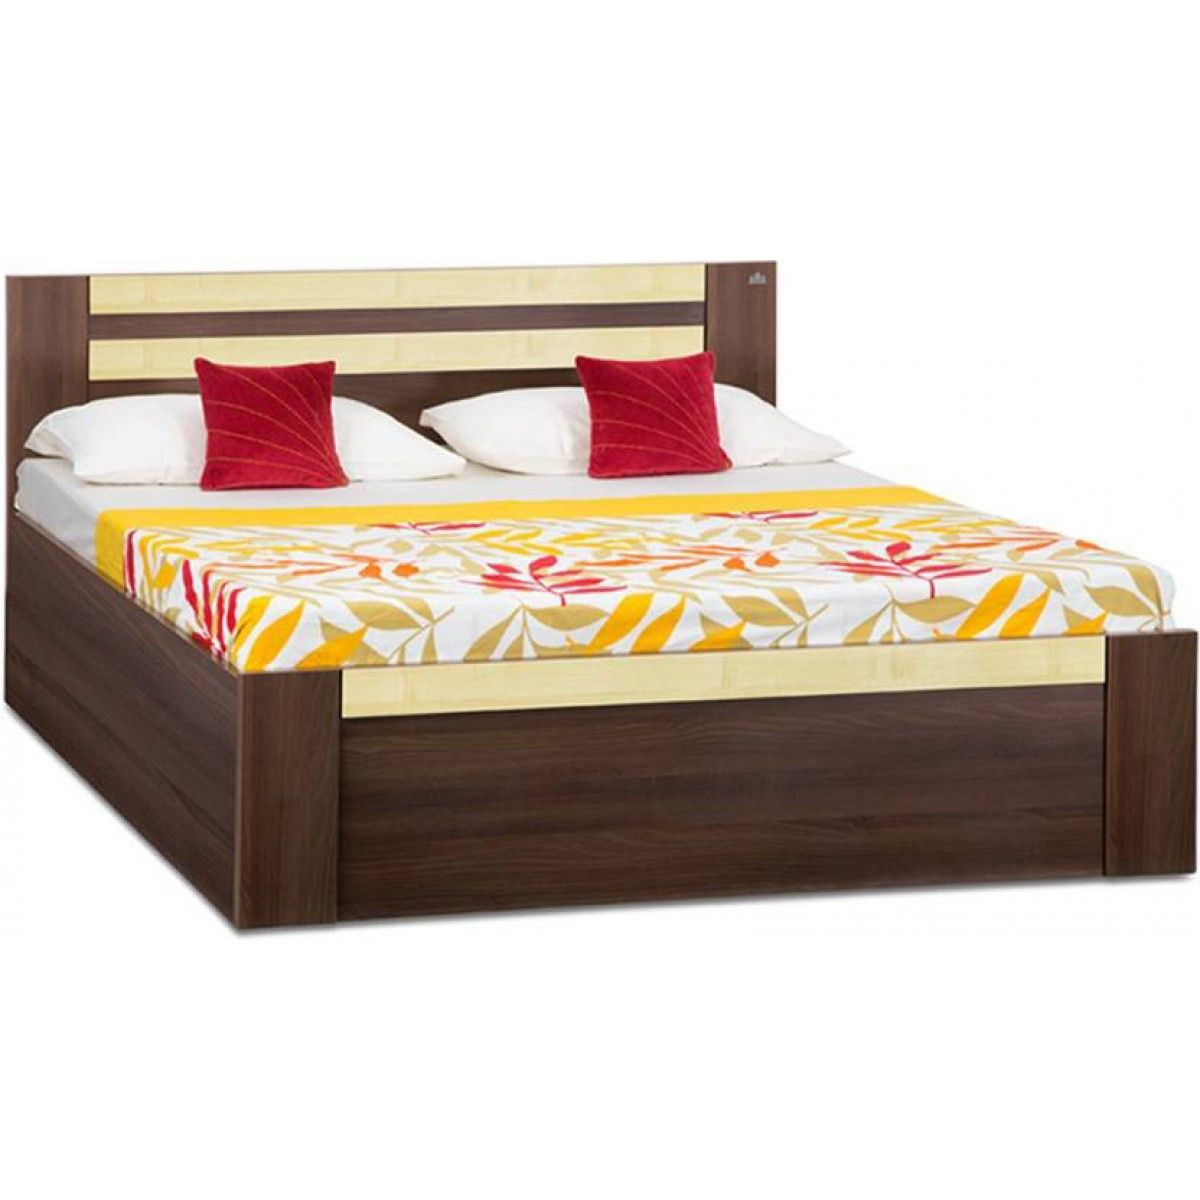 Gorevizon Ad Bs Crafted King Size Bed With Storage Wooden Bed Design Double Bed Designs Bed Designs With Storage